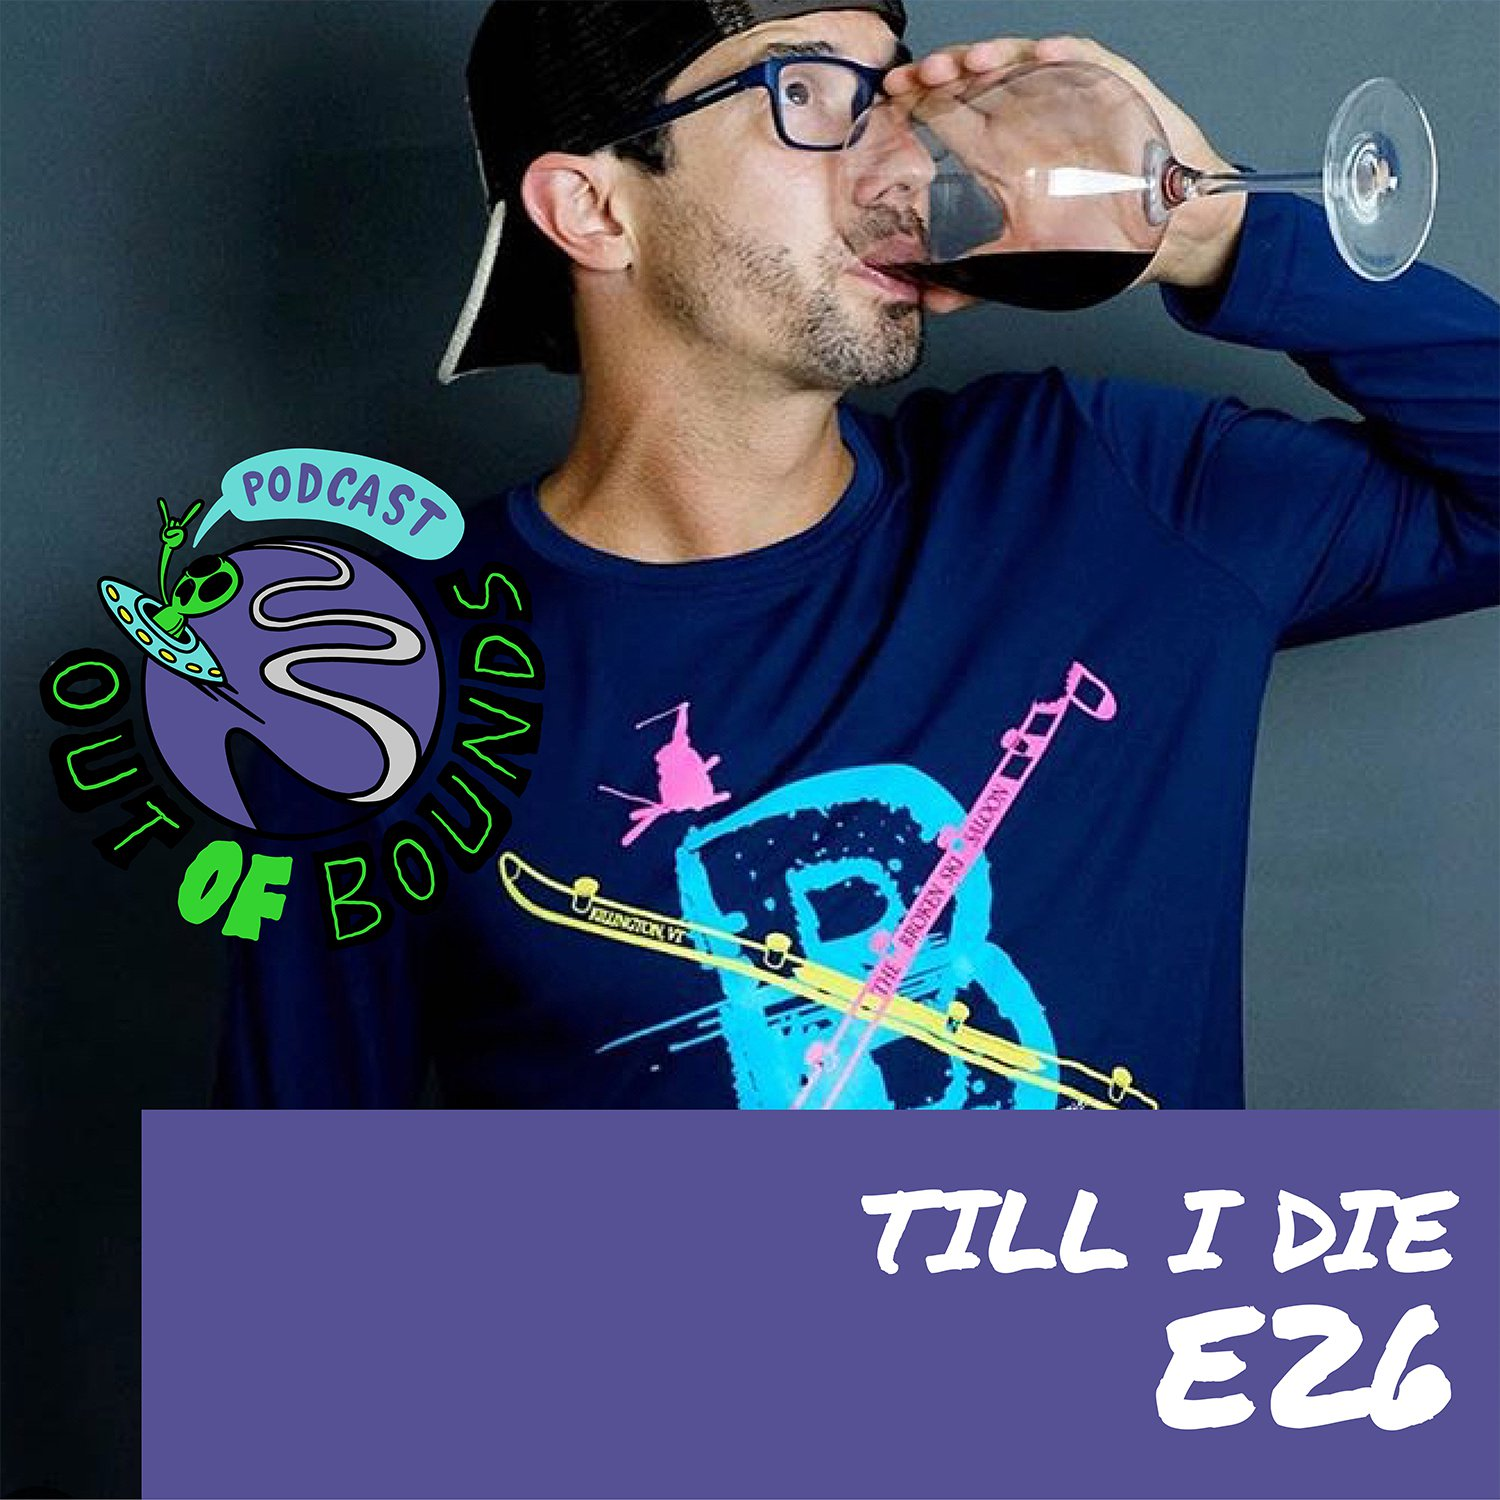 Episode #26 with the eccentric Ryan Orabone, from Till I Die Apparel